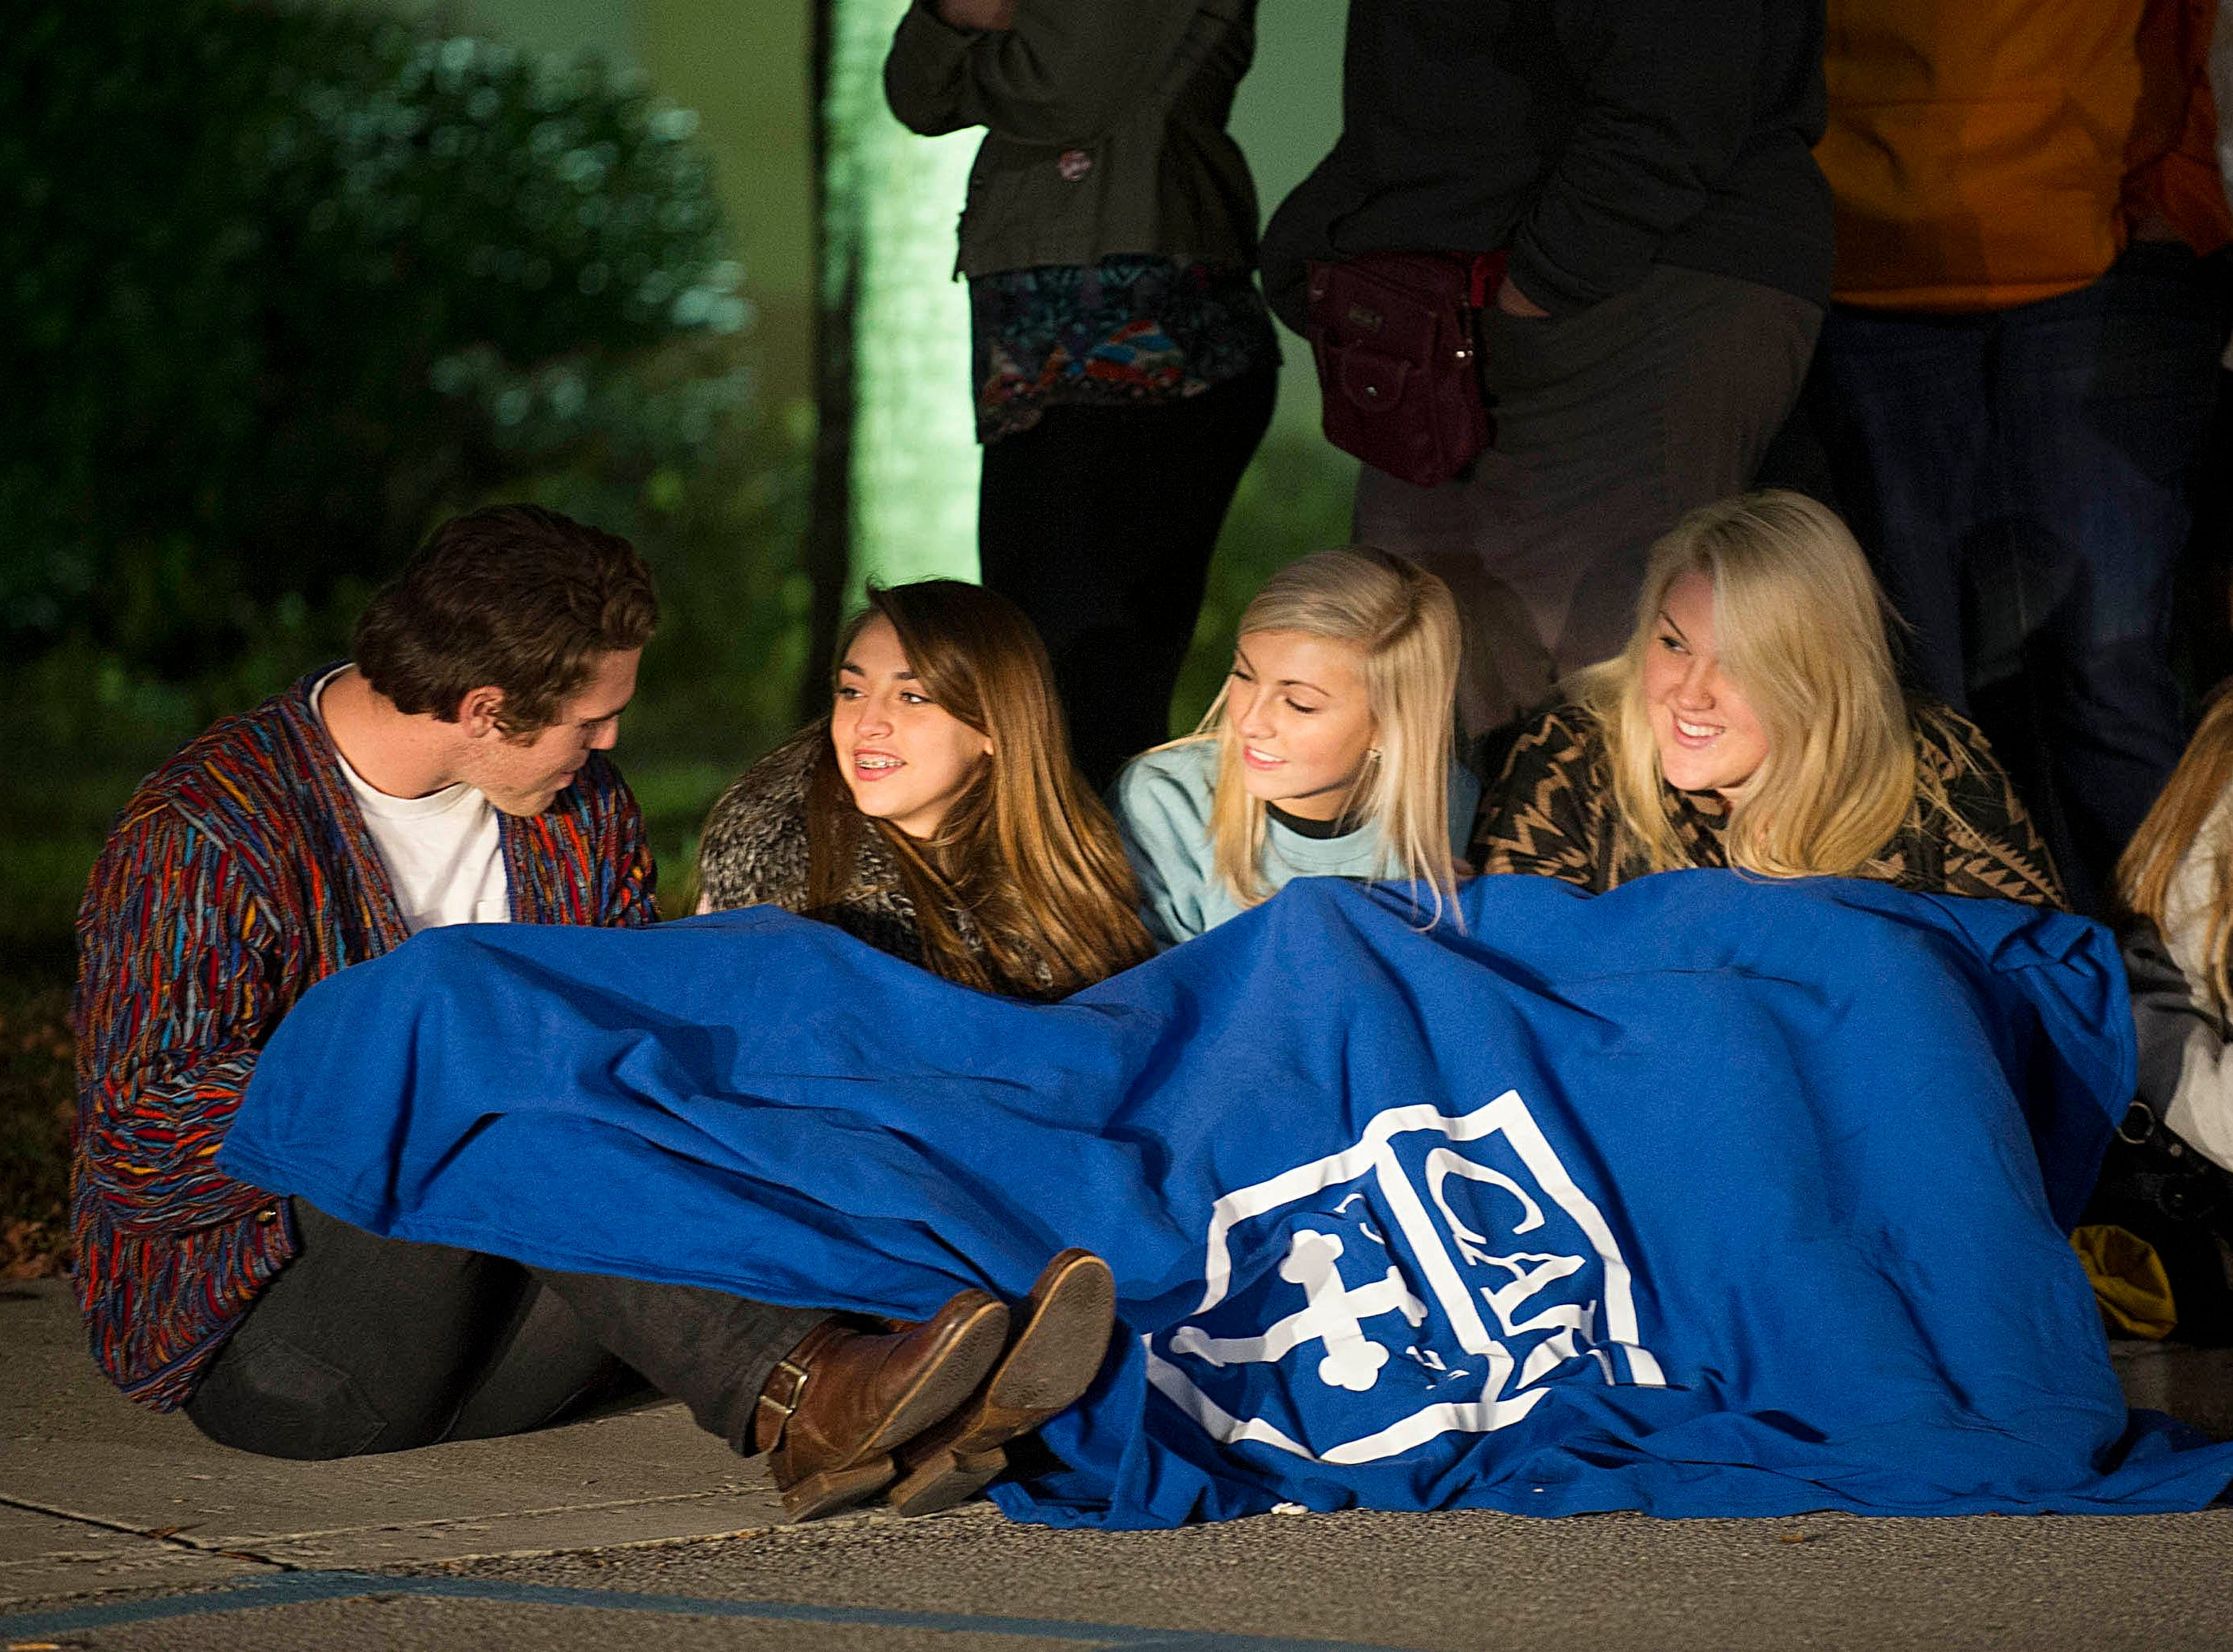 Webb School students Scott Nord, left, sisters Marya and Maya Zaouk, and Jessica Unkefer pass the time as they wait for the doors to open for the Belk Thanksgiving Day sale on Thursday, Nov. 28, 2013, at West Town Mall. They are under a CAK blanket loaned by a friend.